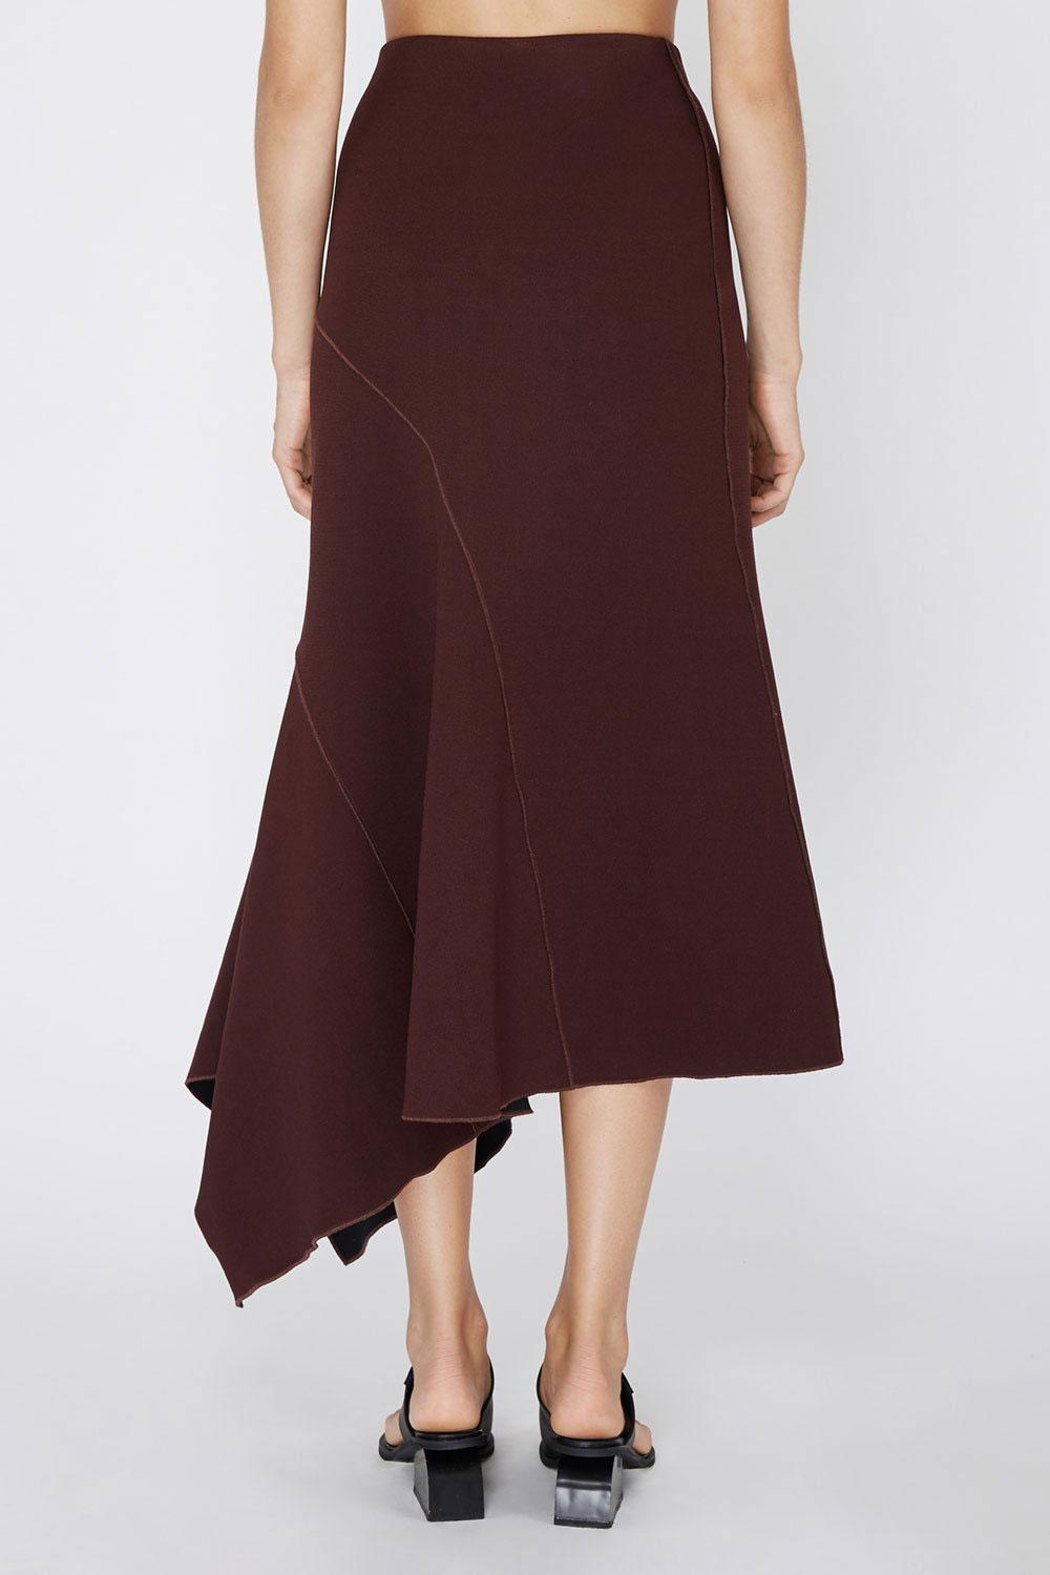 Acler Elgar Skirt - Back Cropped Image